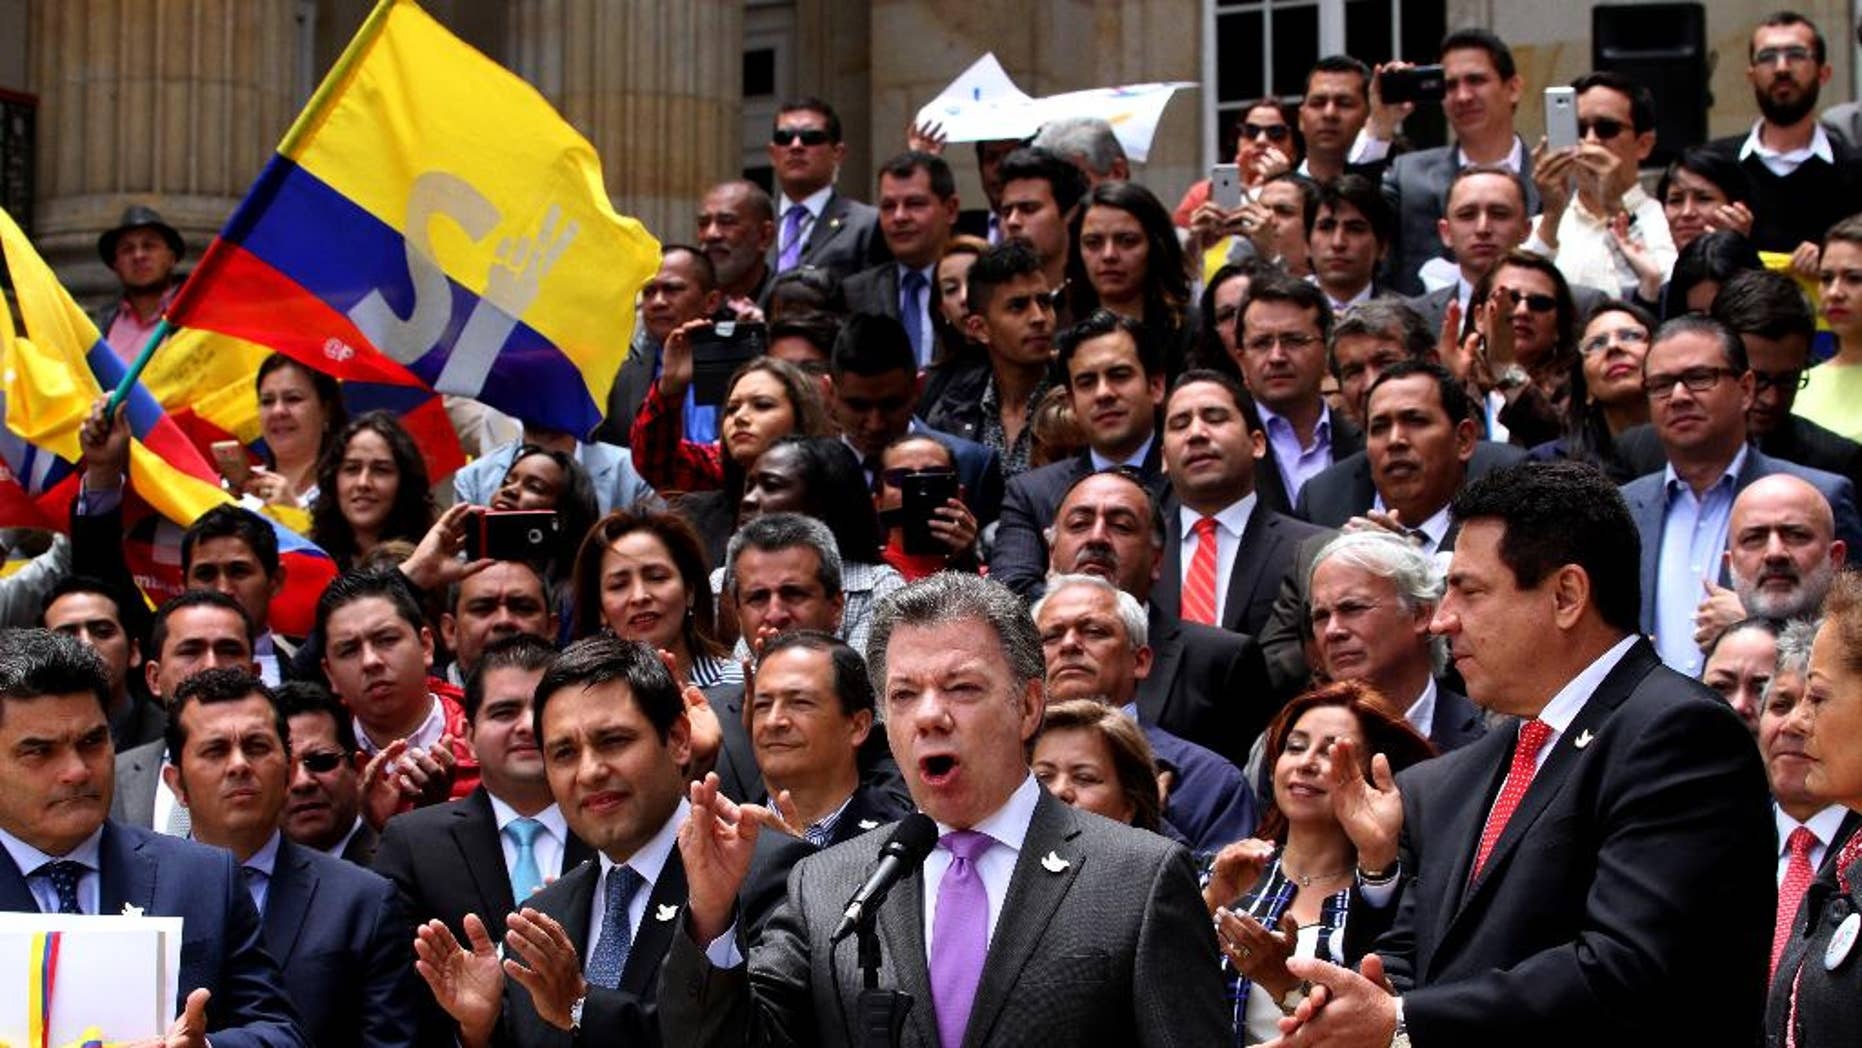 Colombia's President Juan Manuel Santos, front, second from right, speaks after delivering to Congress the peace deal with rebels of the Revolutionary Armed Forces of Colombia, FARC, in Bogota, Colombia, Thursday, Aug. 25, 2016. Santos is moving fast to hold a national referendum on a peace deal meant to end a half-century conflict with leftist rebels, delivering the final text of the deal on Thursday to Congress and declaring a definitive ceasefire against the guerrillas.(AP Photo/Felipe Caicedo)